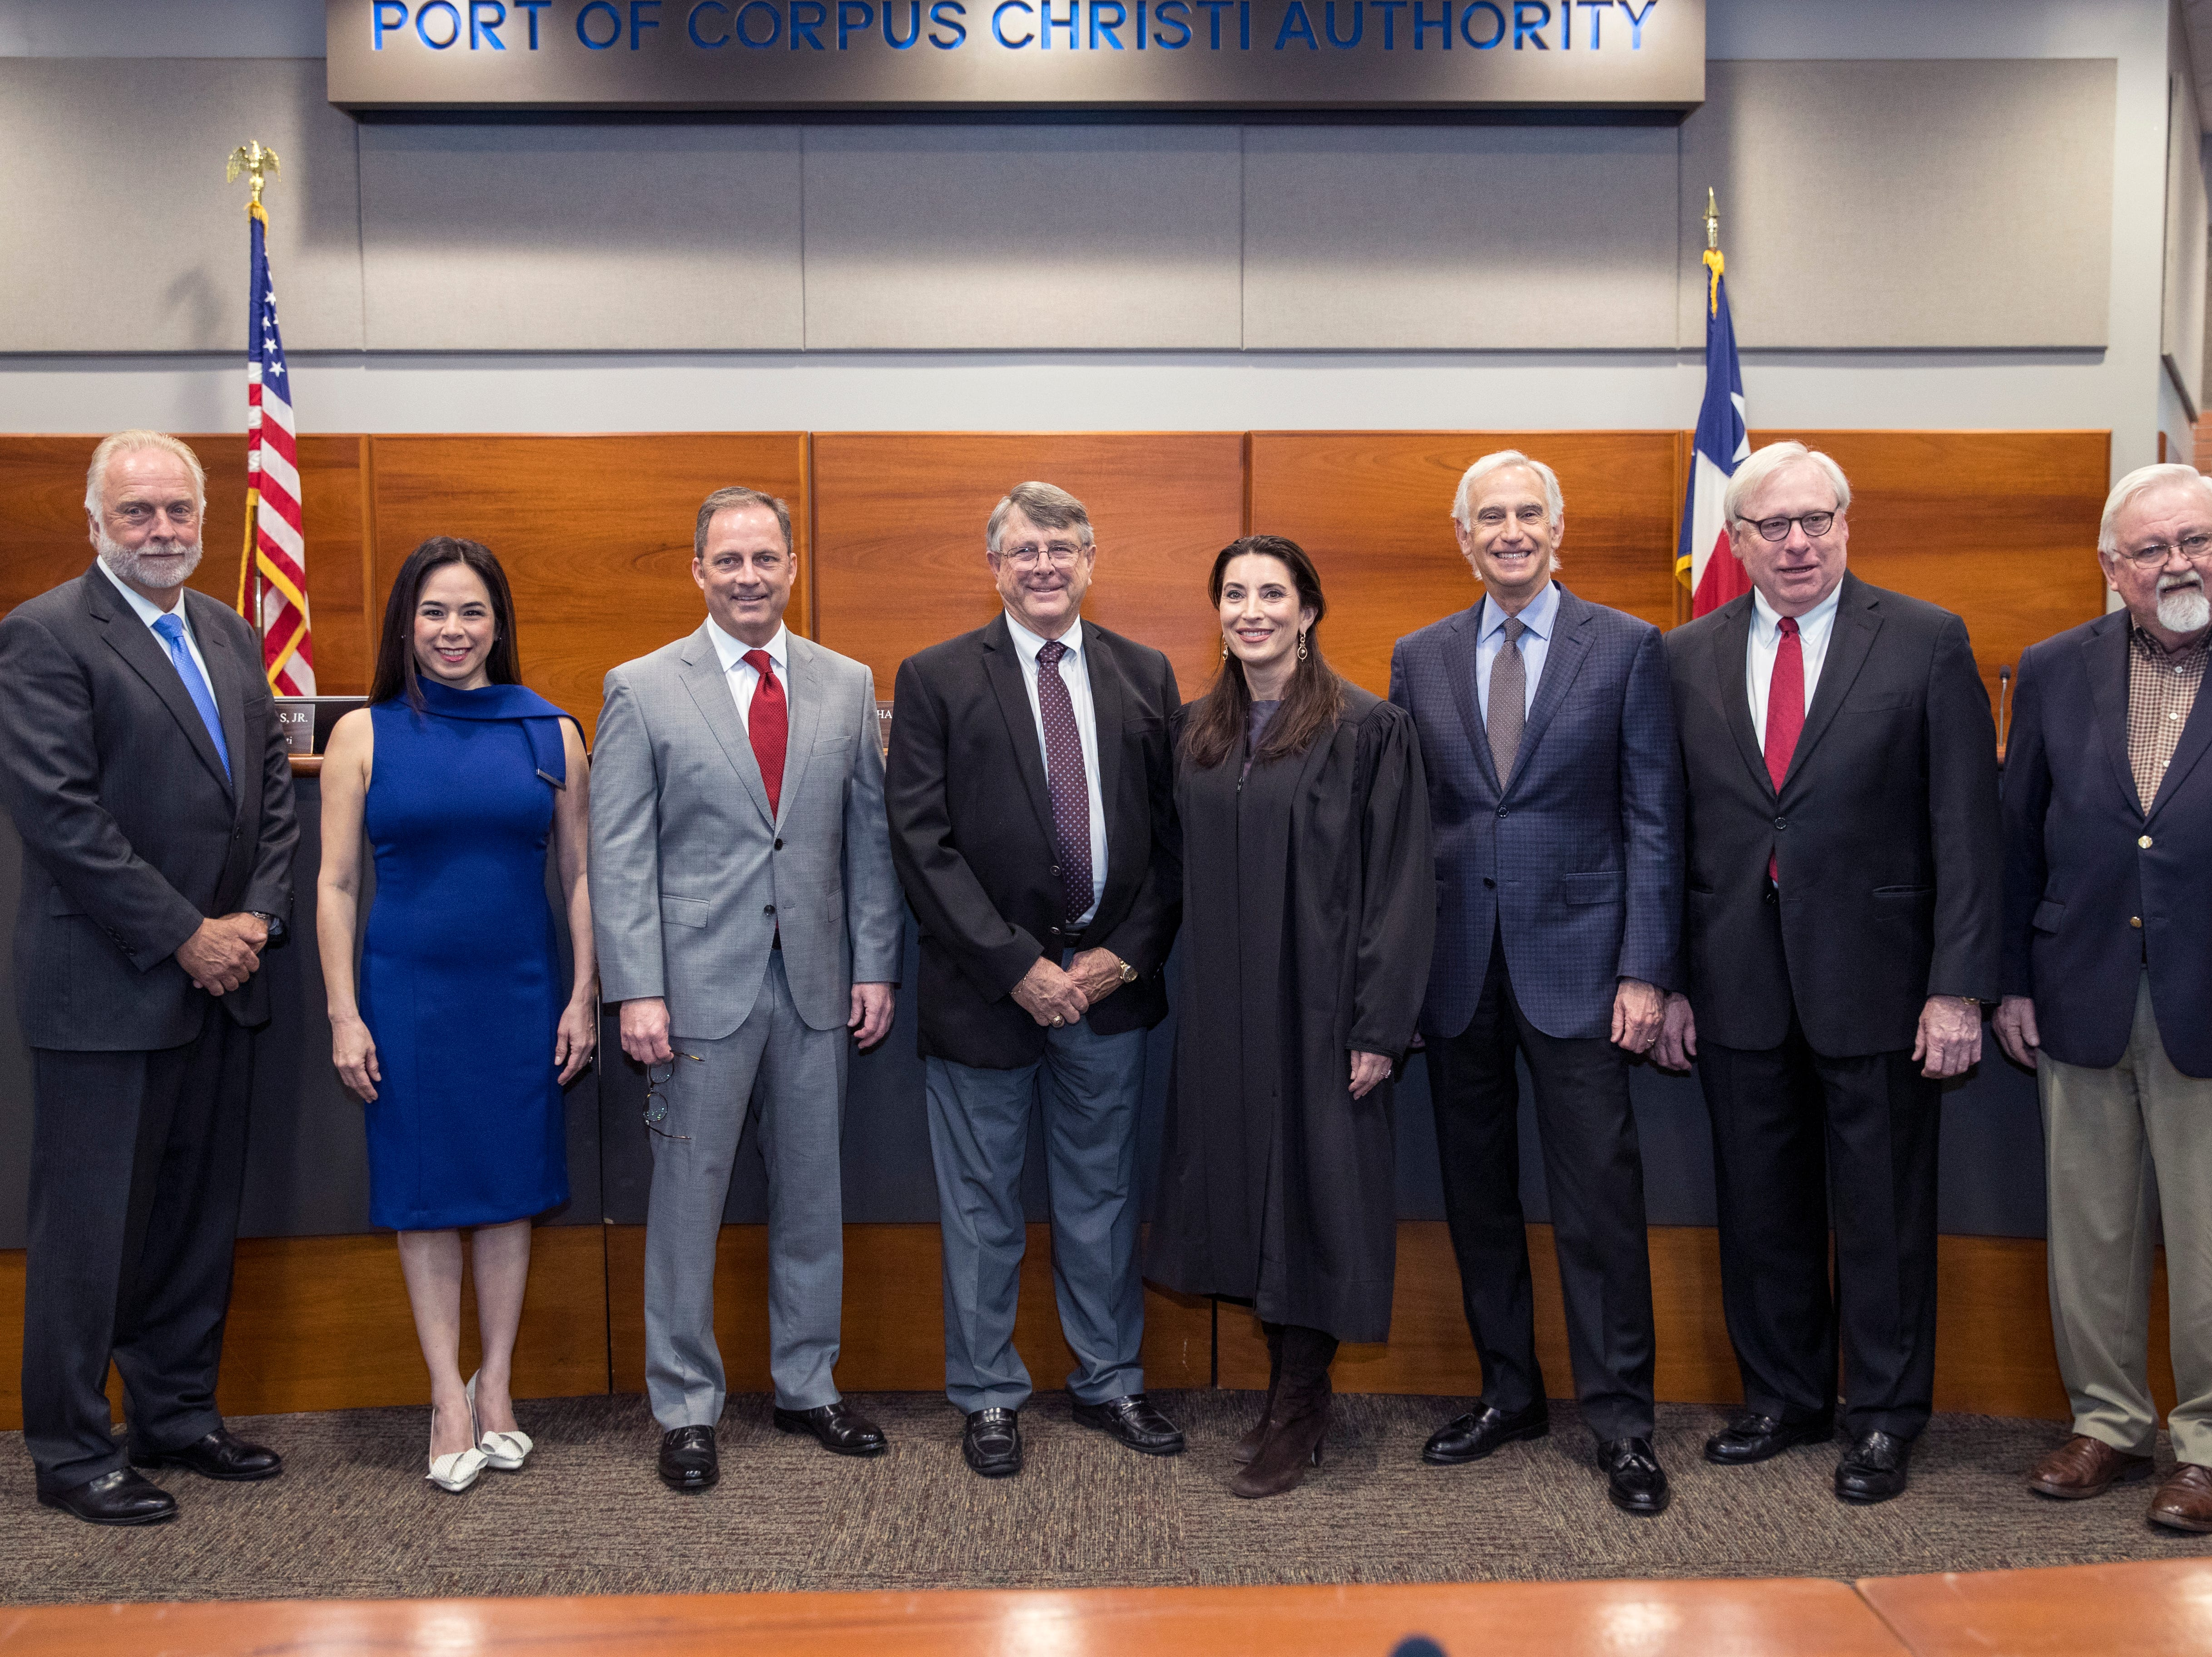 Nueces County Judge Barbara Canales swore in three port commissioners on February 19, 2019.